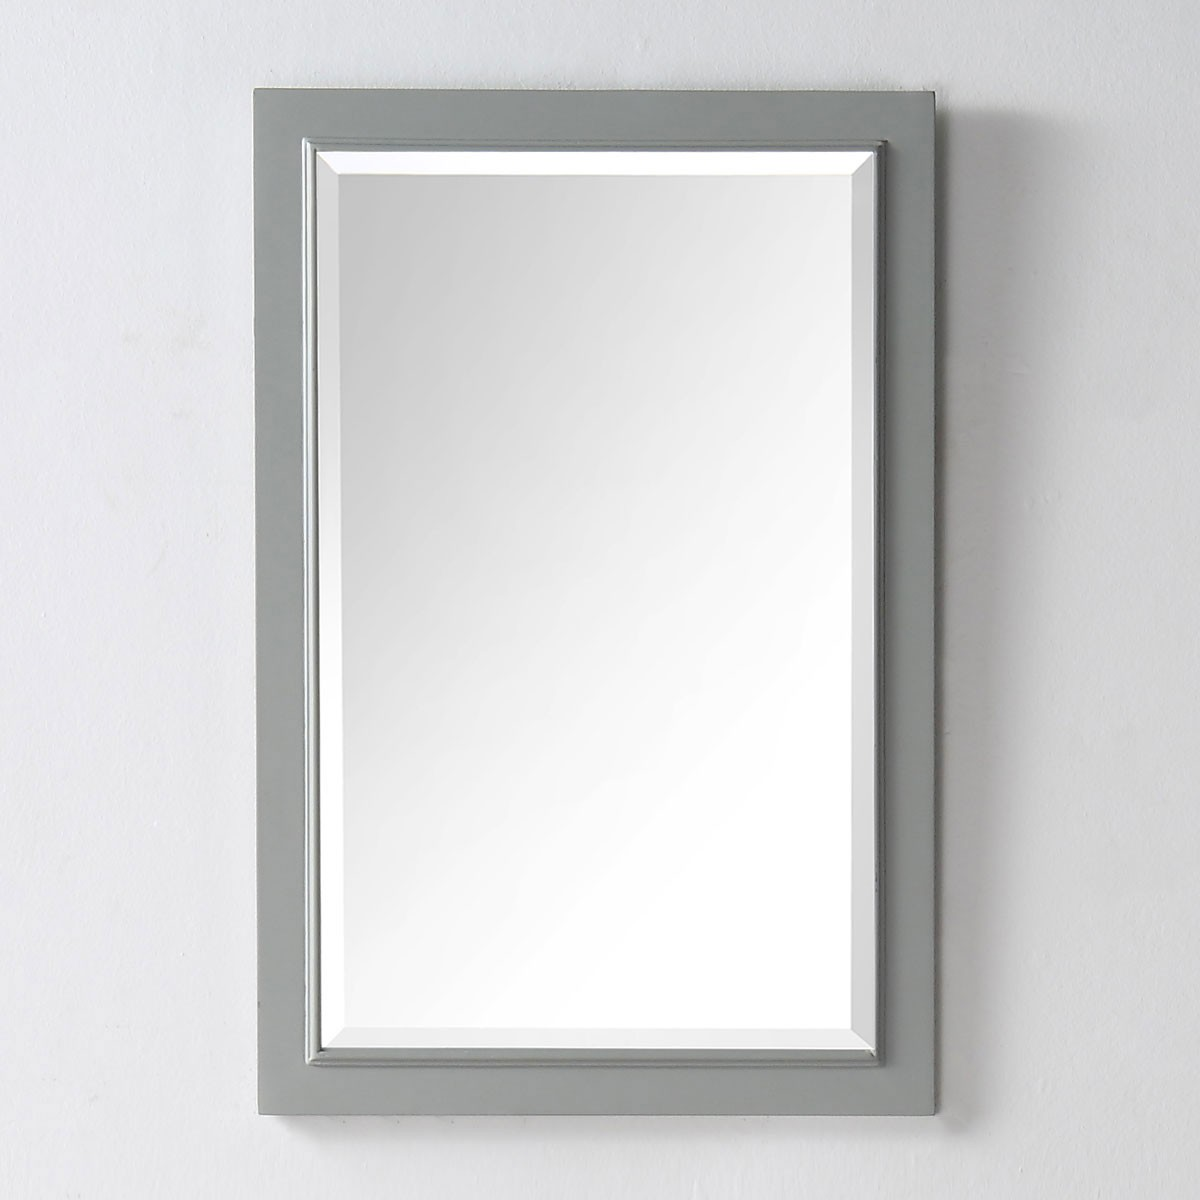 20 x 30 In Mirror with Cool Gray Frame (DK-5000-CGM)